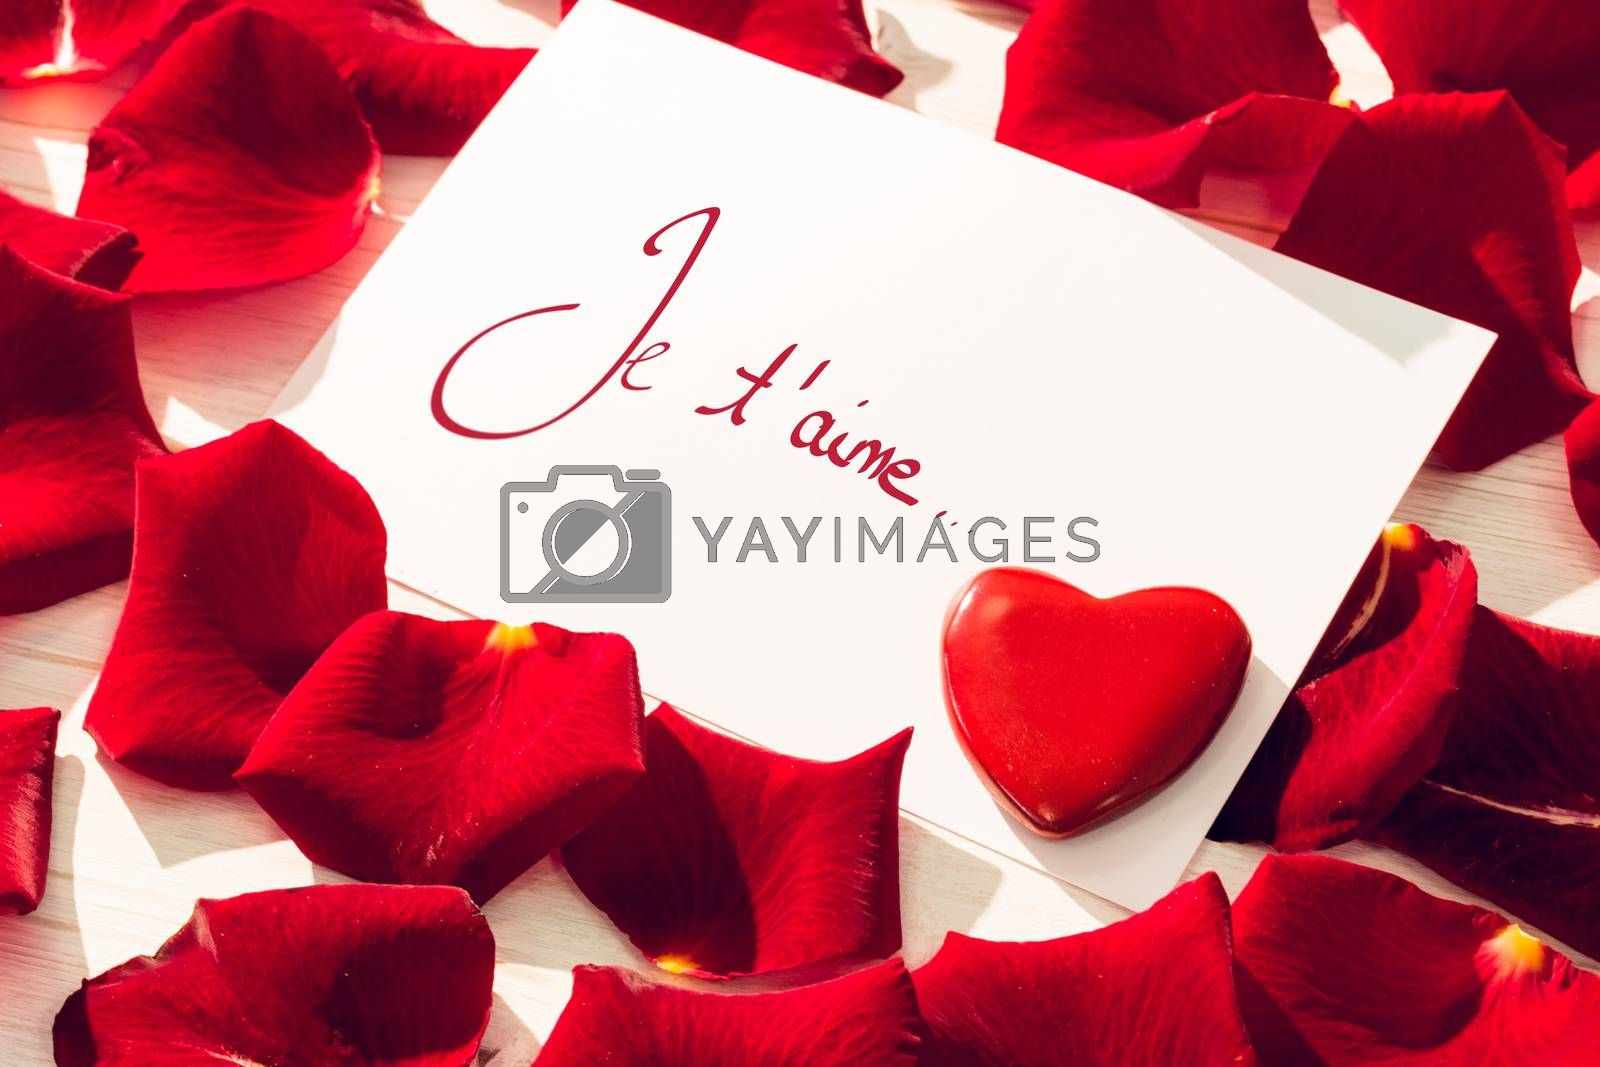 Valentines love hearts against card with red rose petals